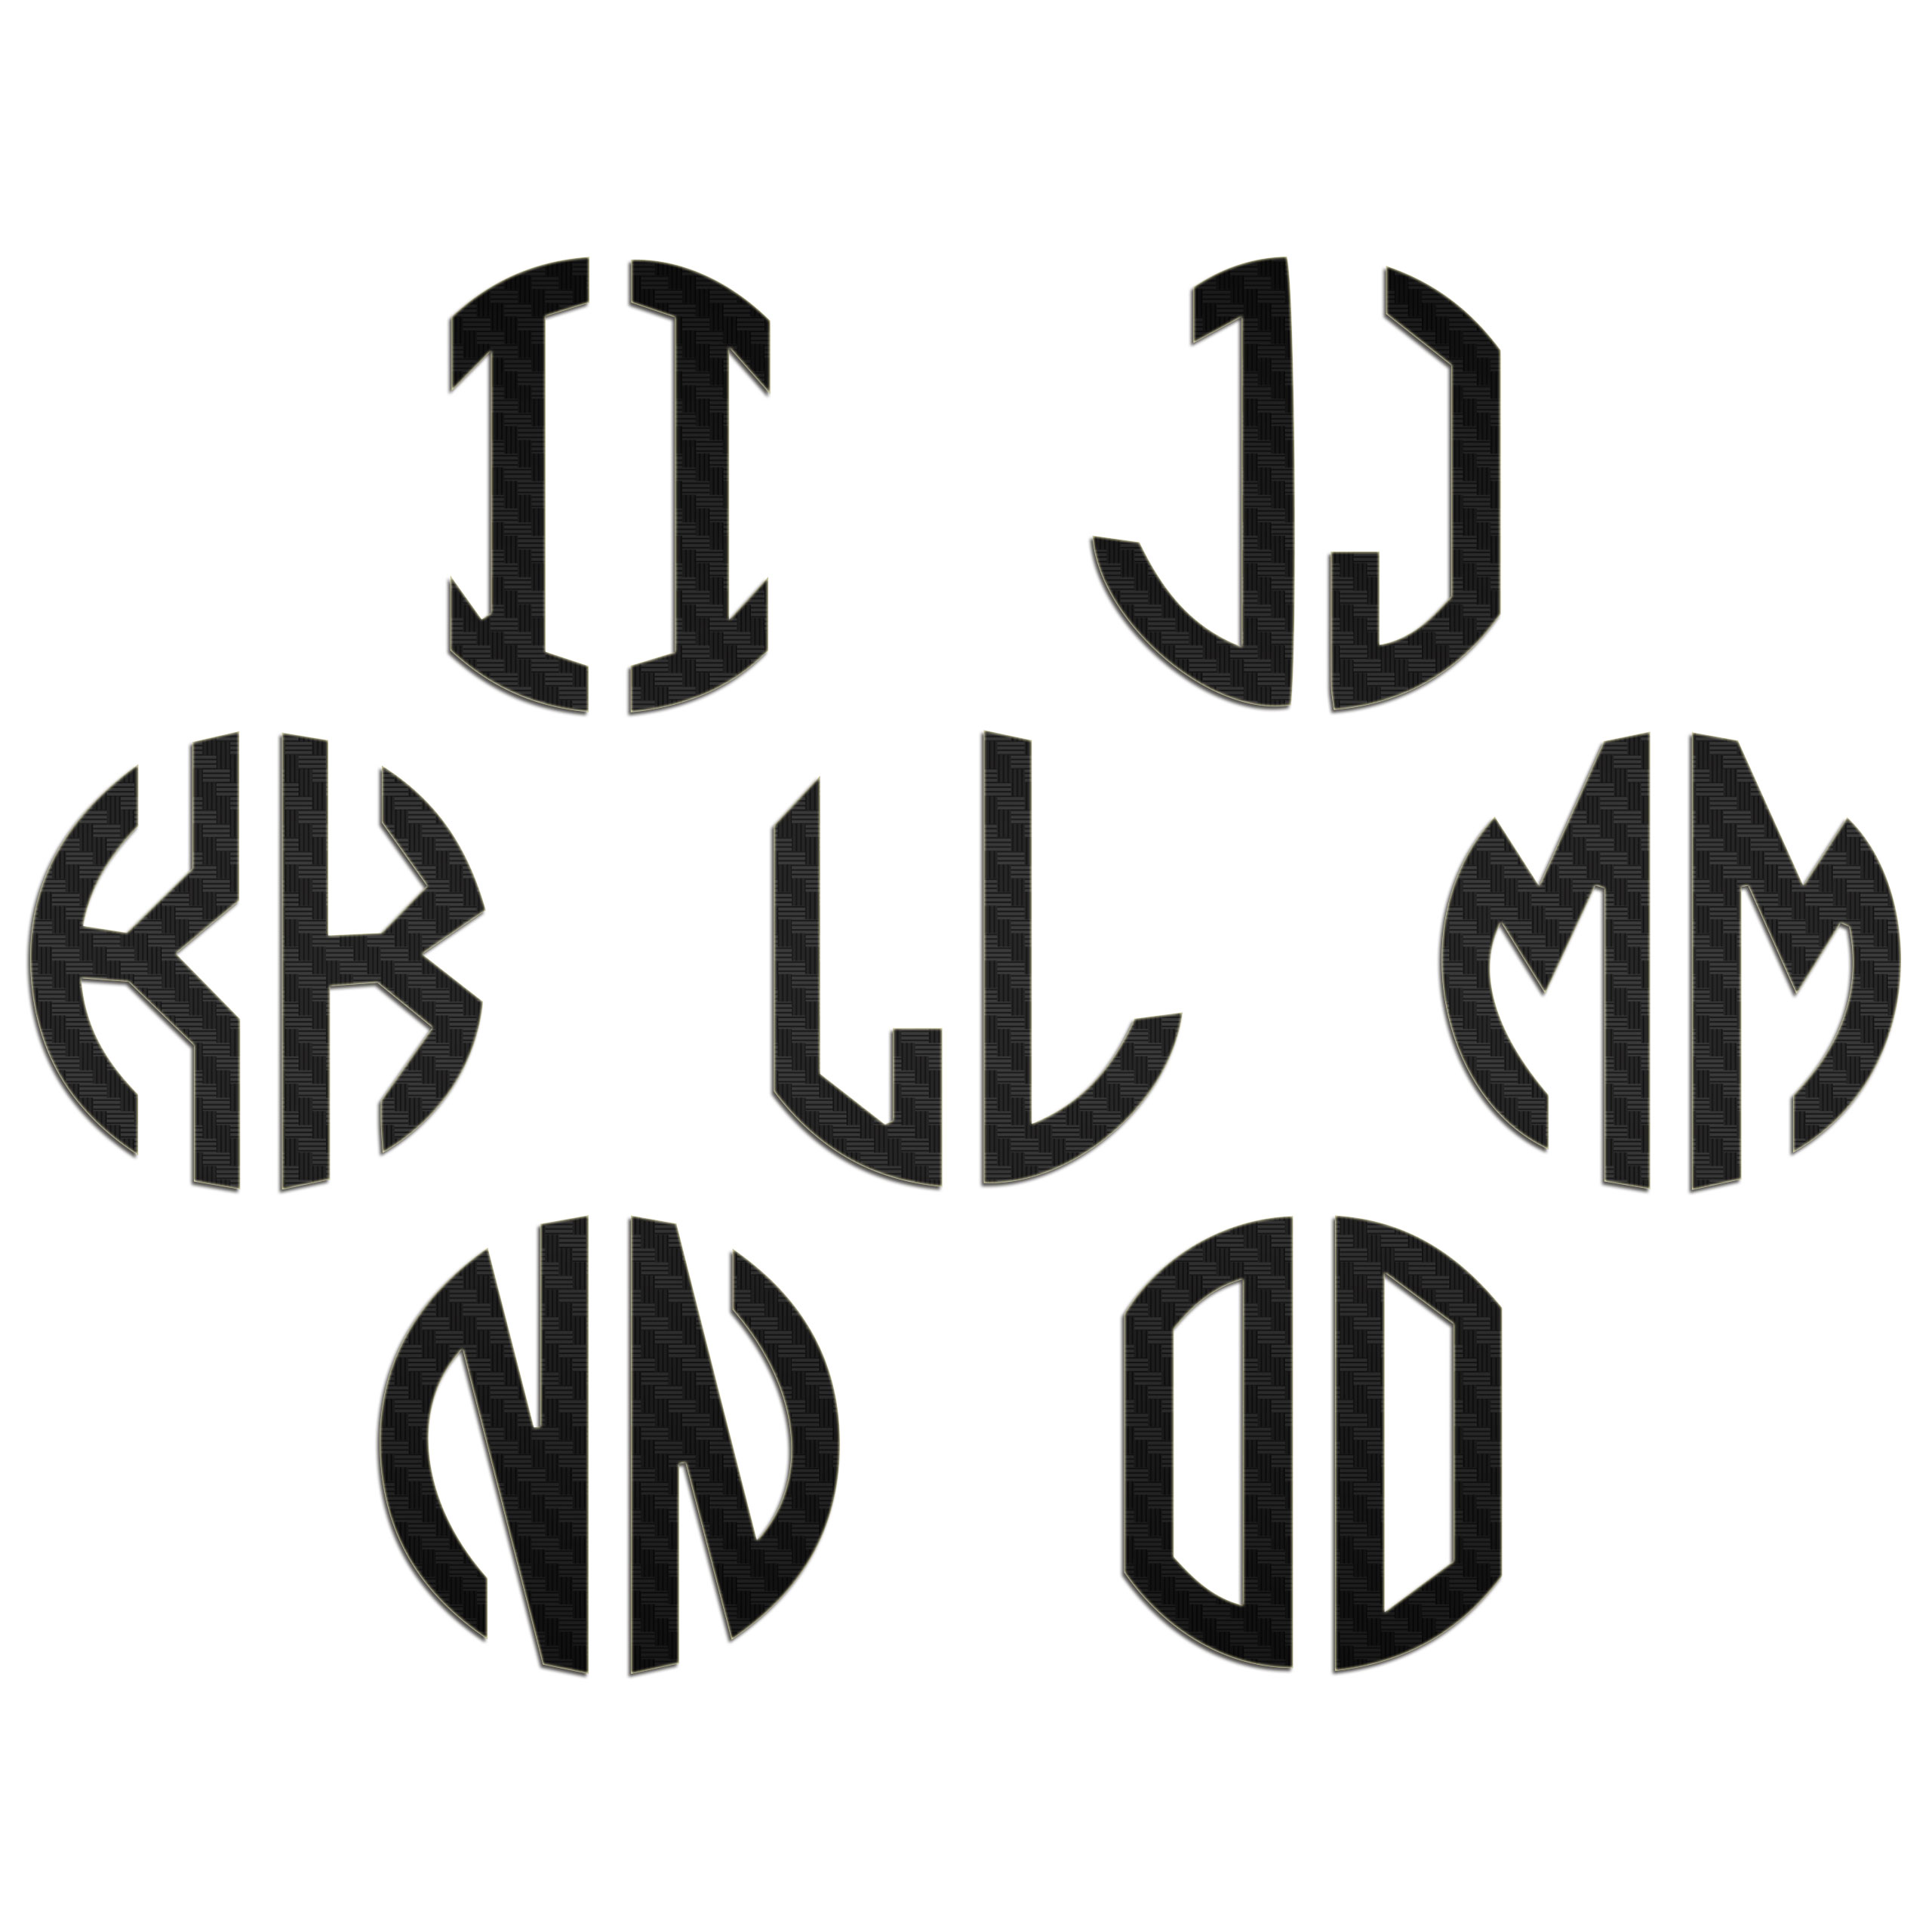 JasonCarlMorgan-JCM-Graphics-Personalised-Initials-Monogram-Sticker thumbnail 3